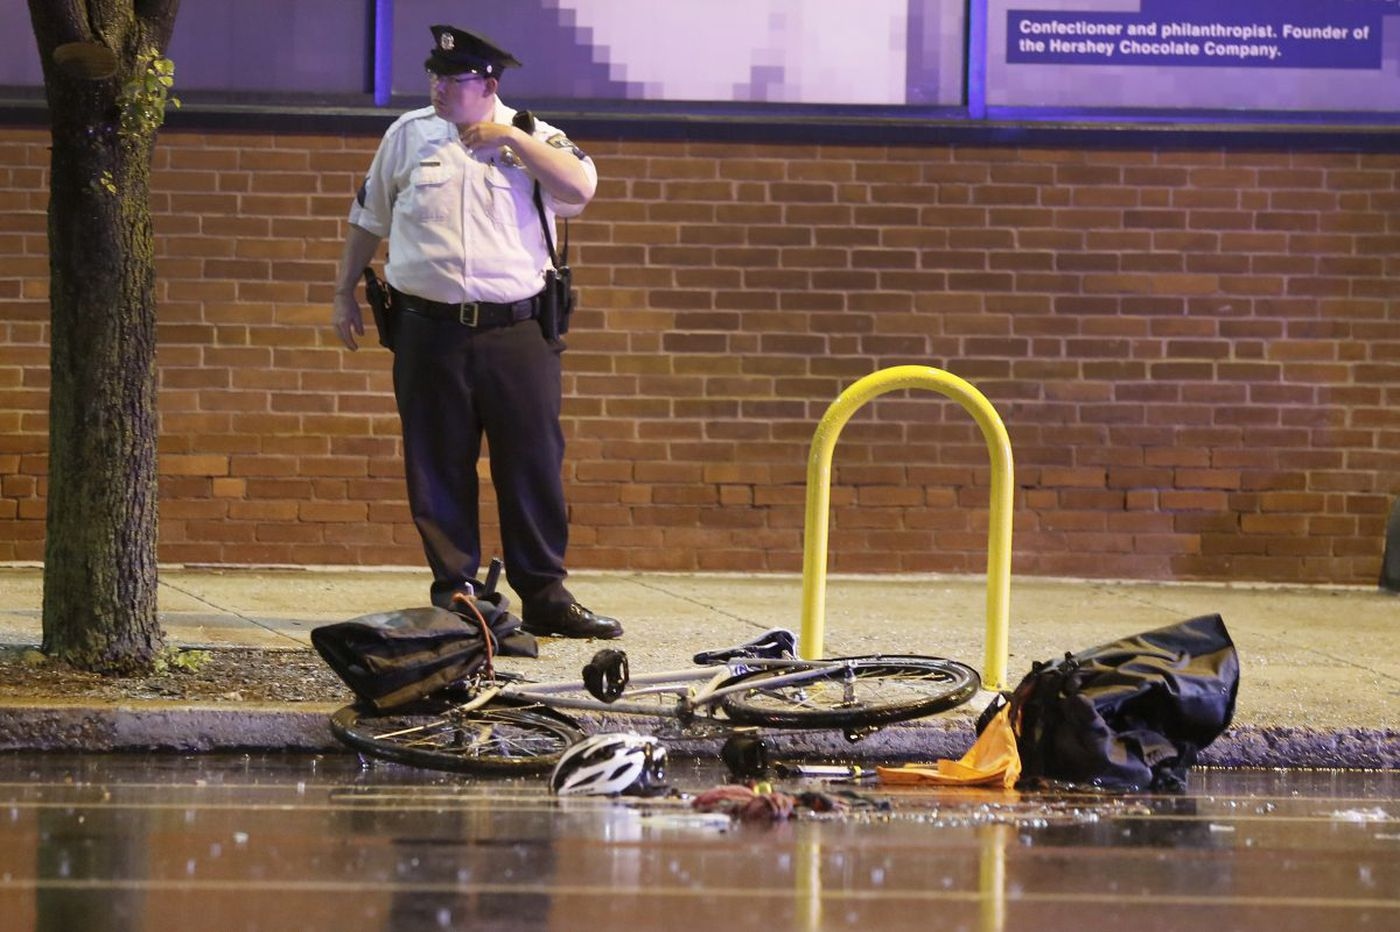 Bicyclist killed in Spring Garden collision was working as courier